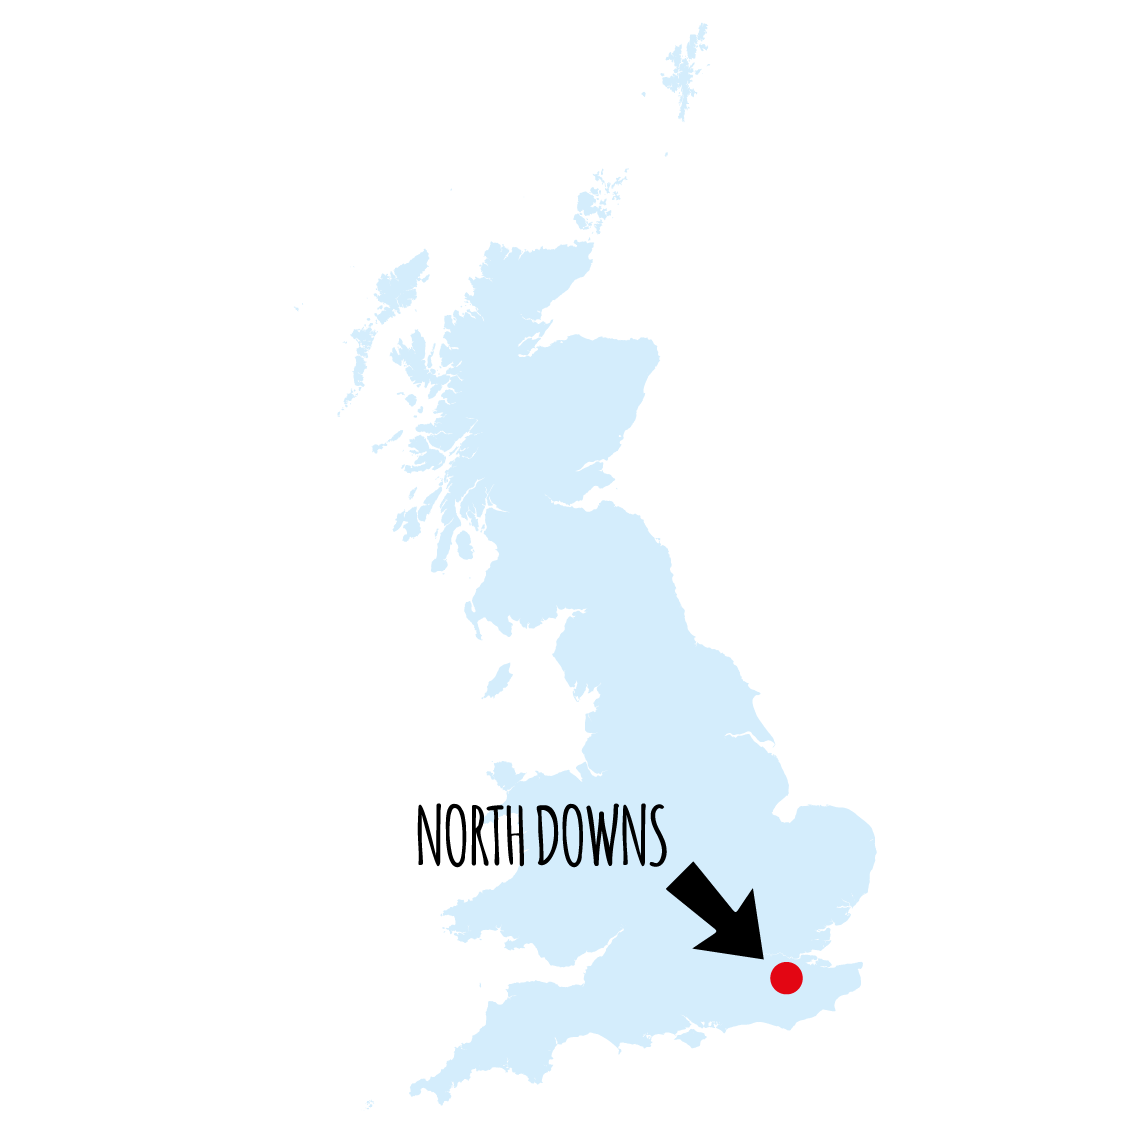 north-downs-map.png